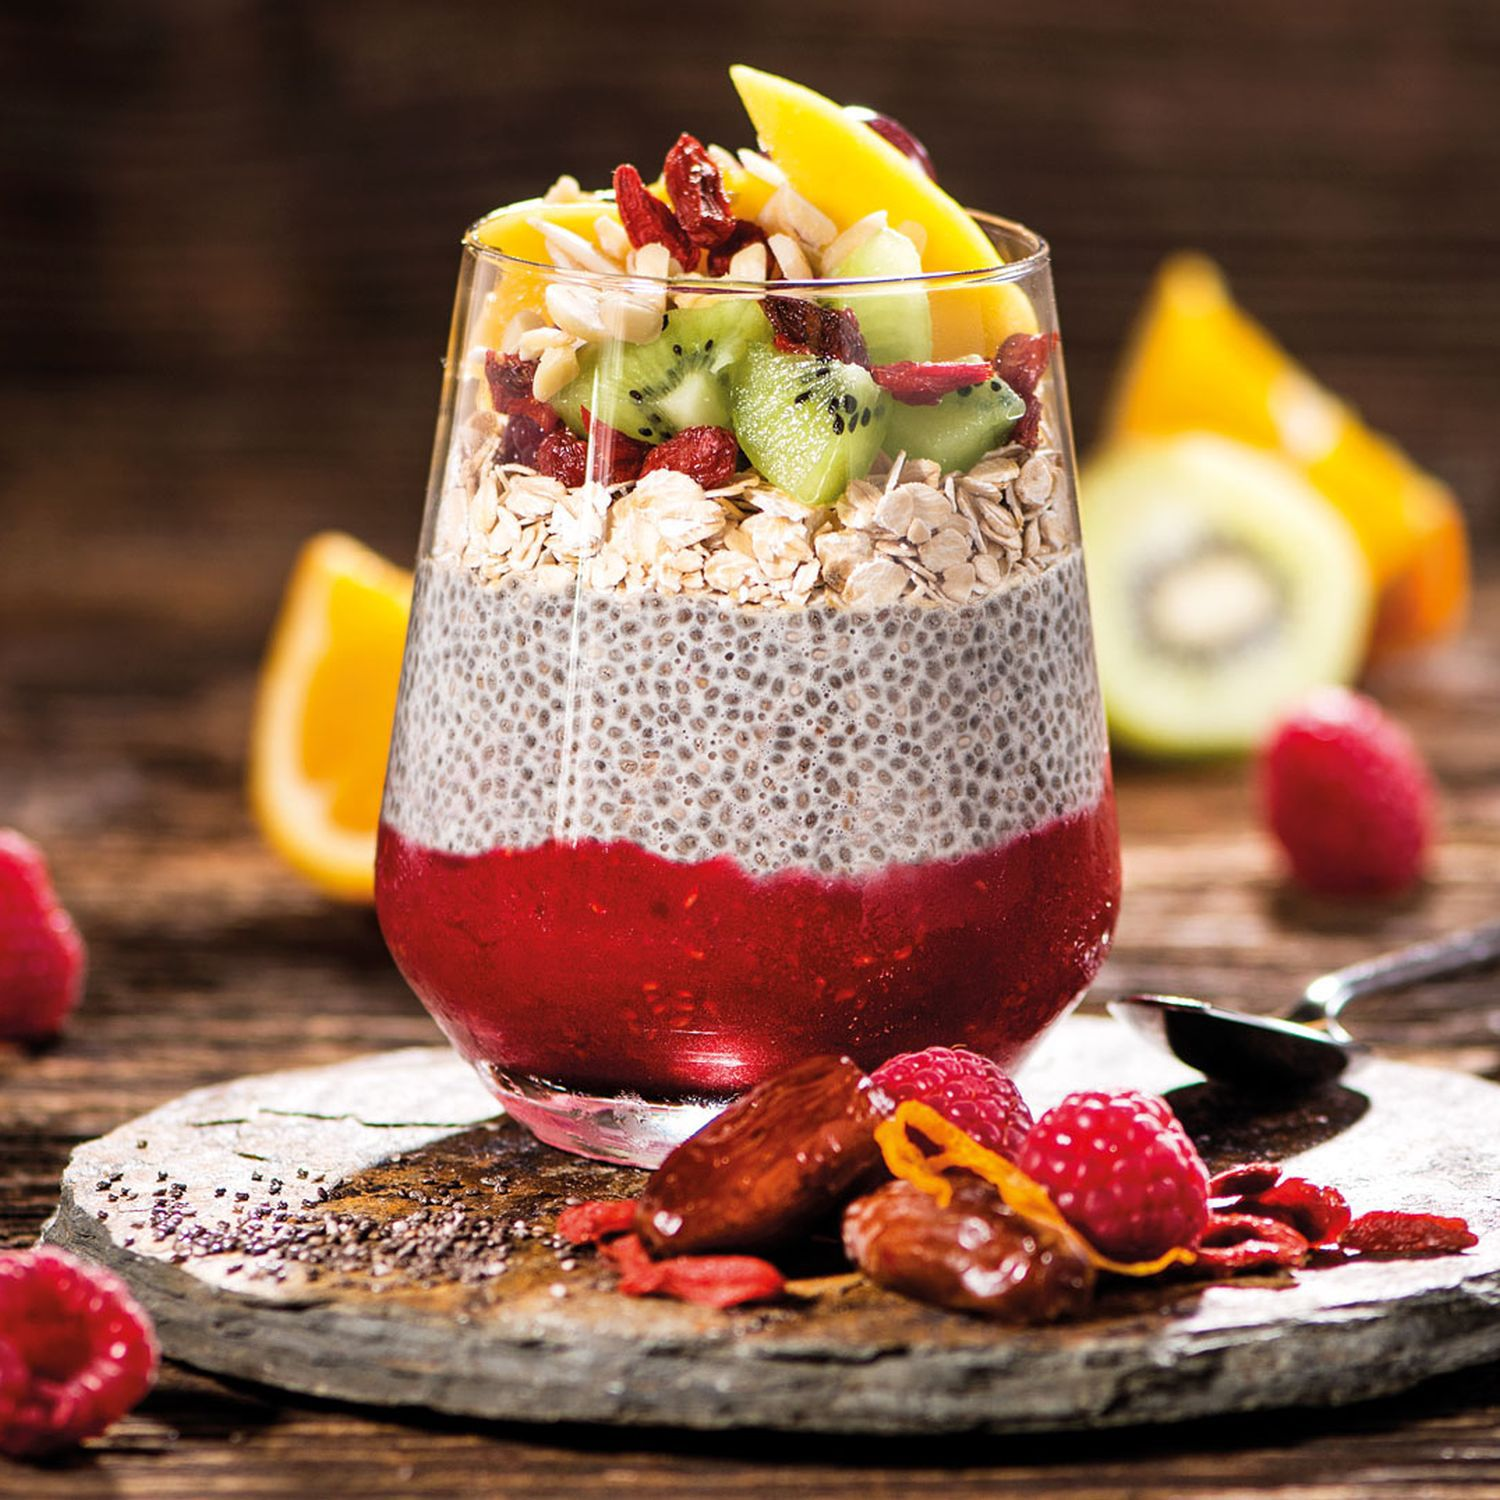 Superfruchtiger Chia-Pudding